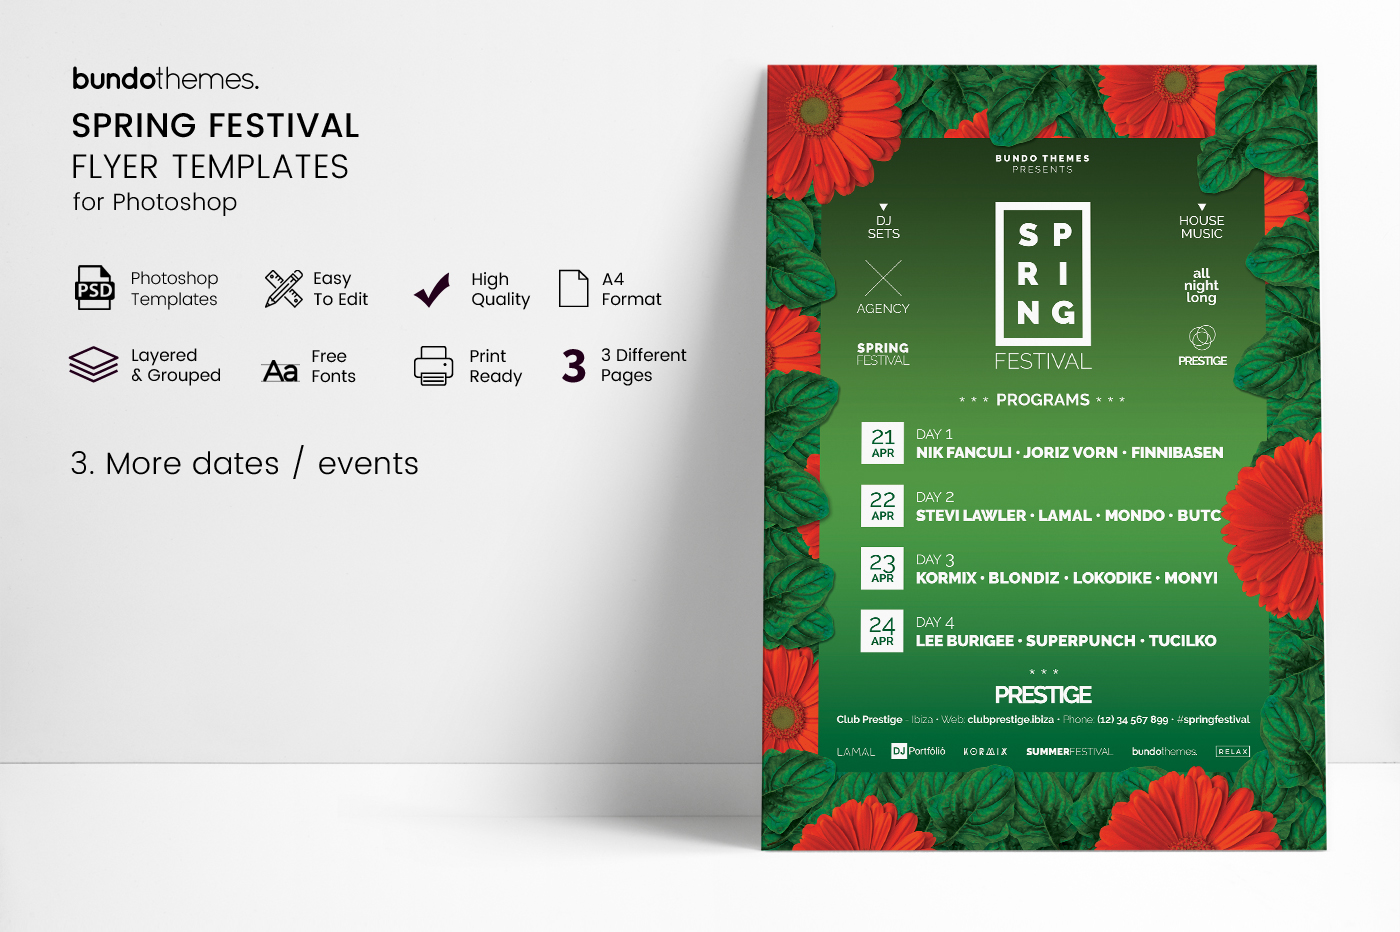 Spring Festival Flyer Template example image 5